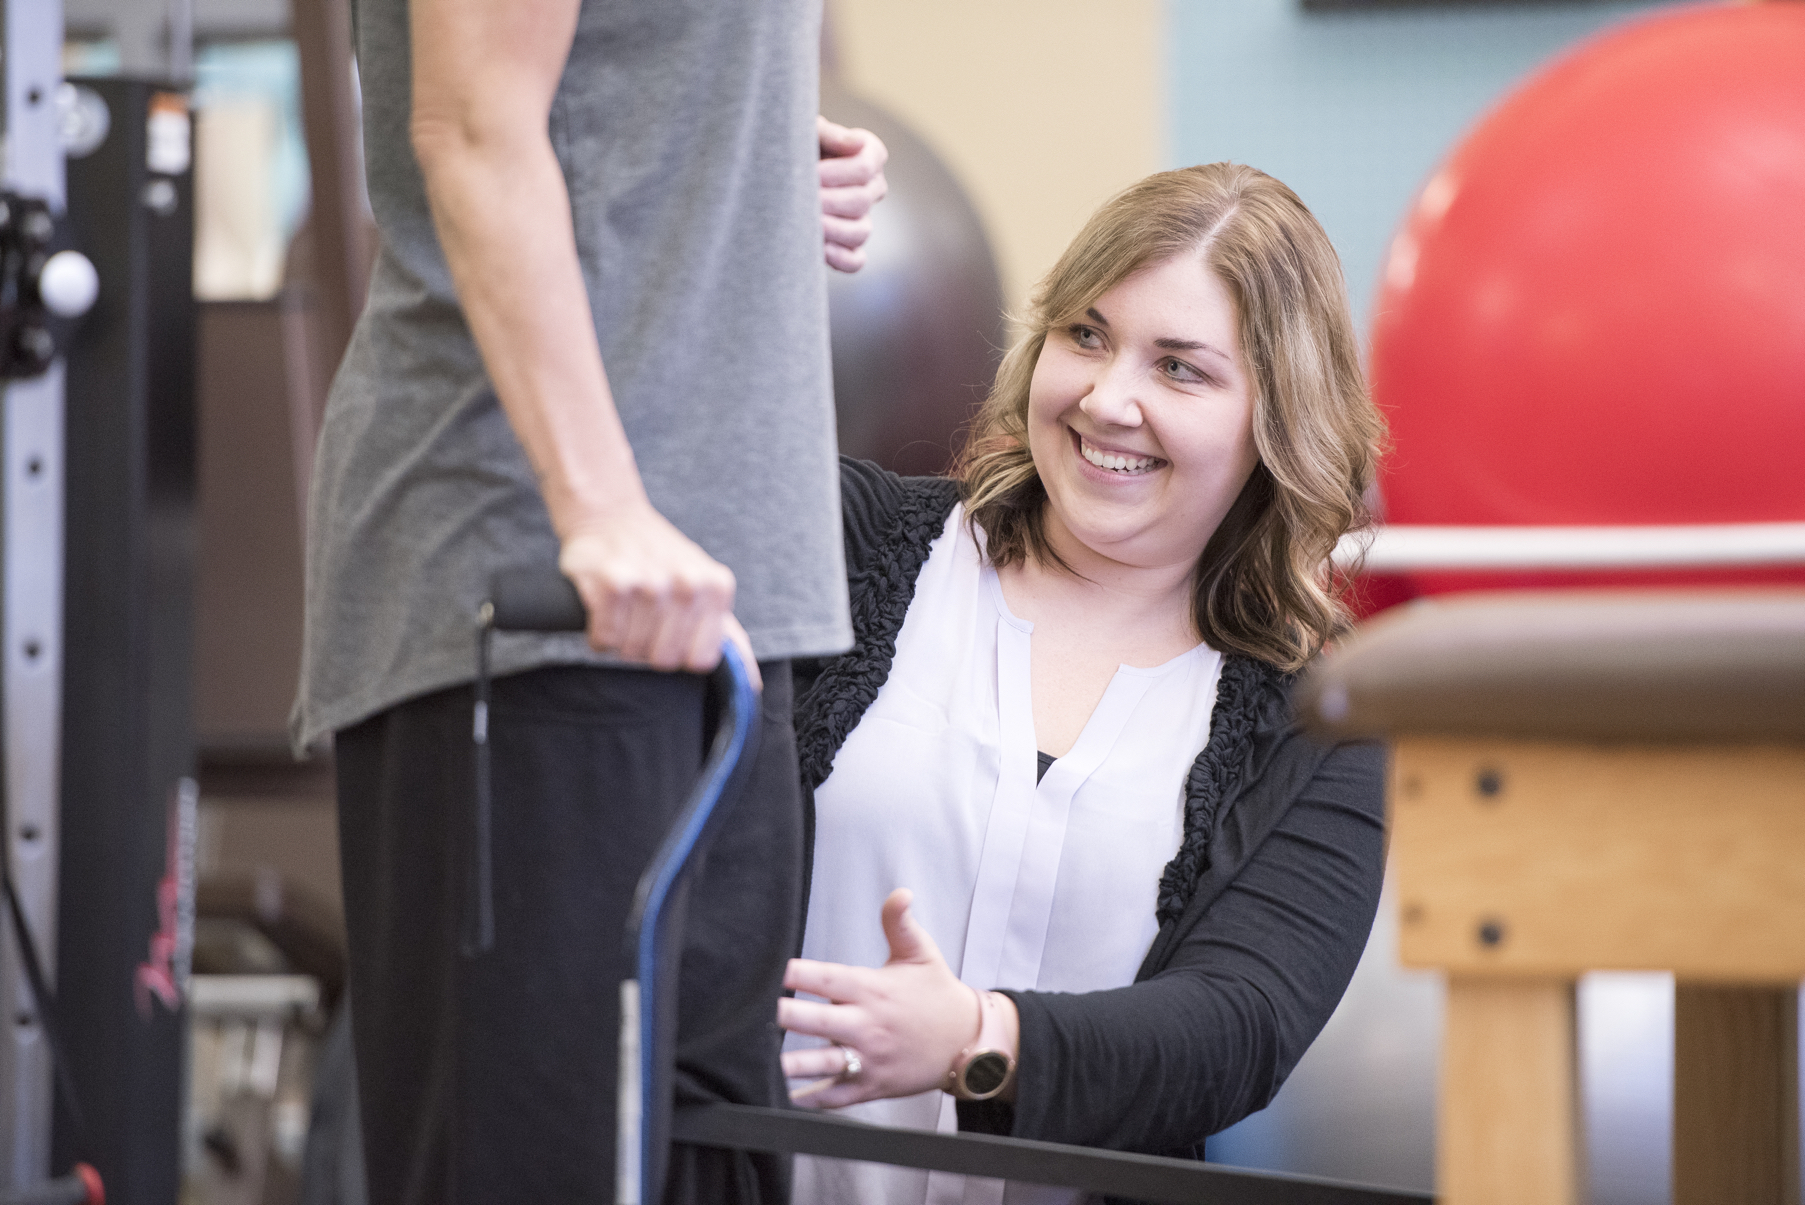 Physical Therapy or Surgery? How to Decide Which is Best for You.